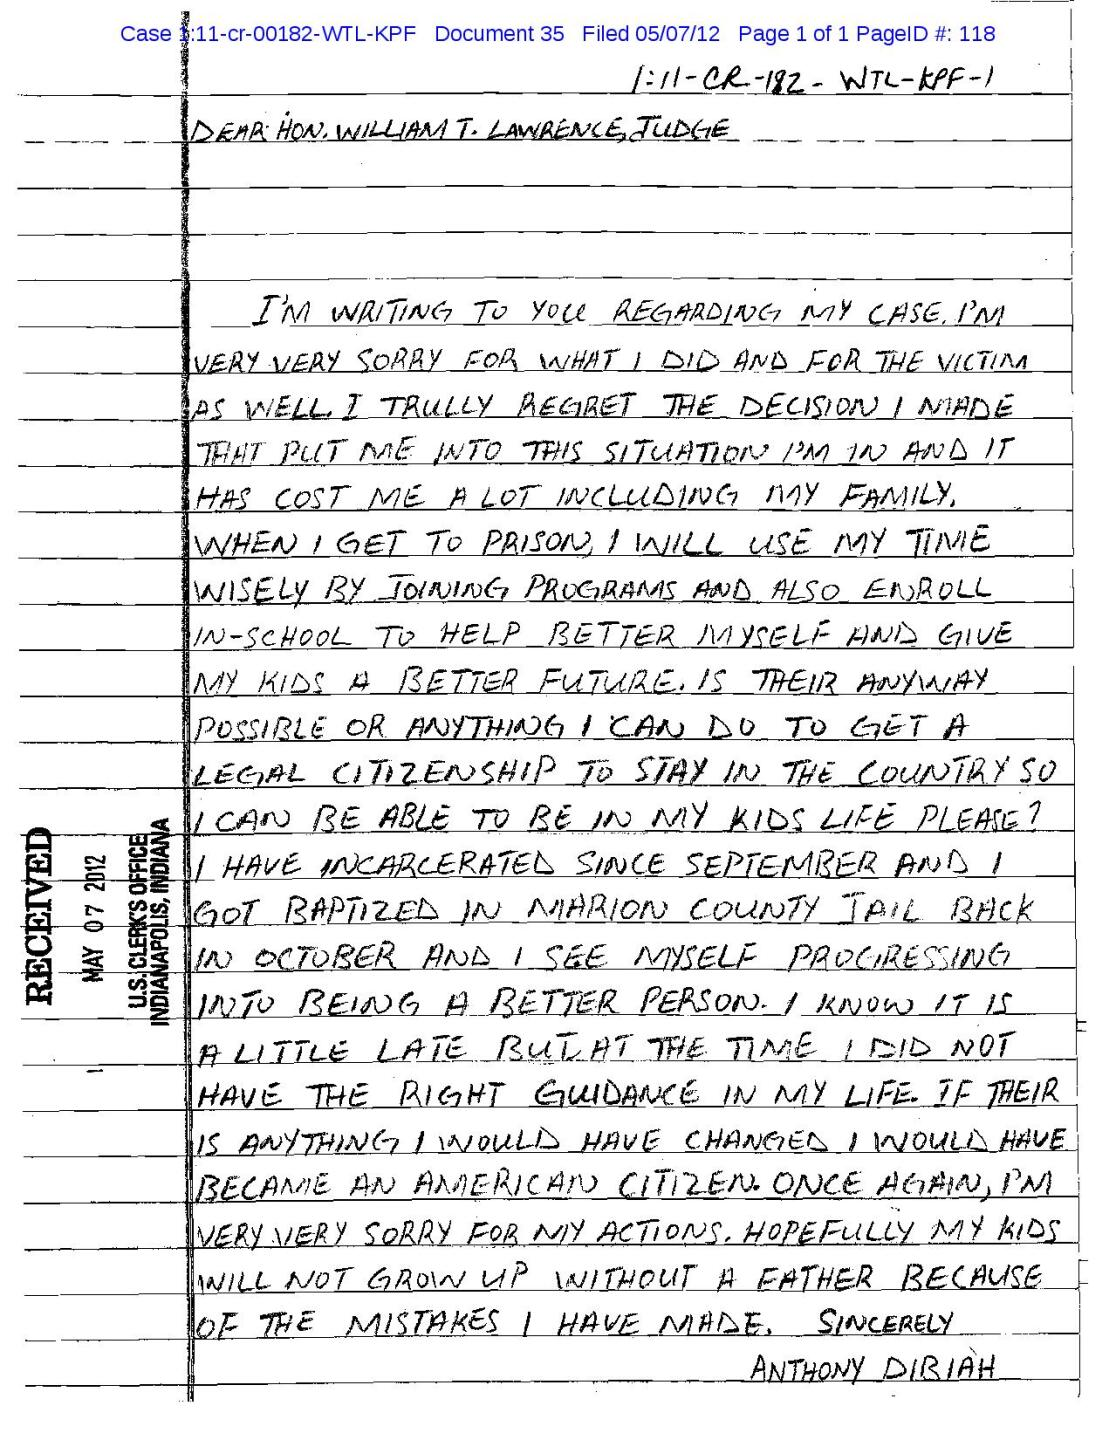 Dibiah letter to judge-page-001.jpg